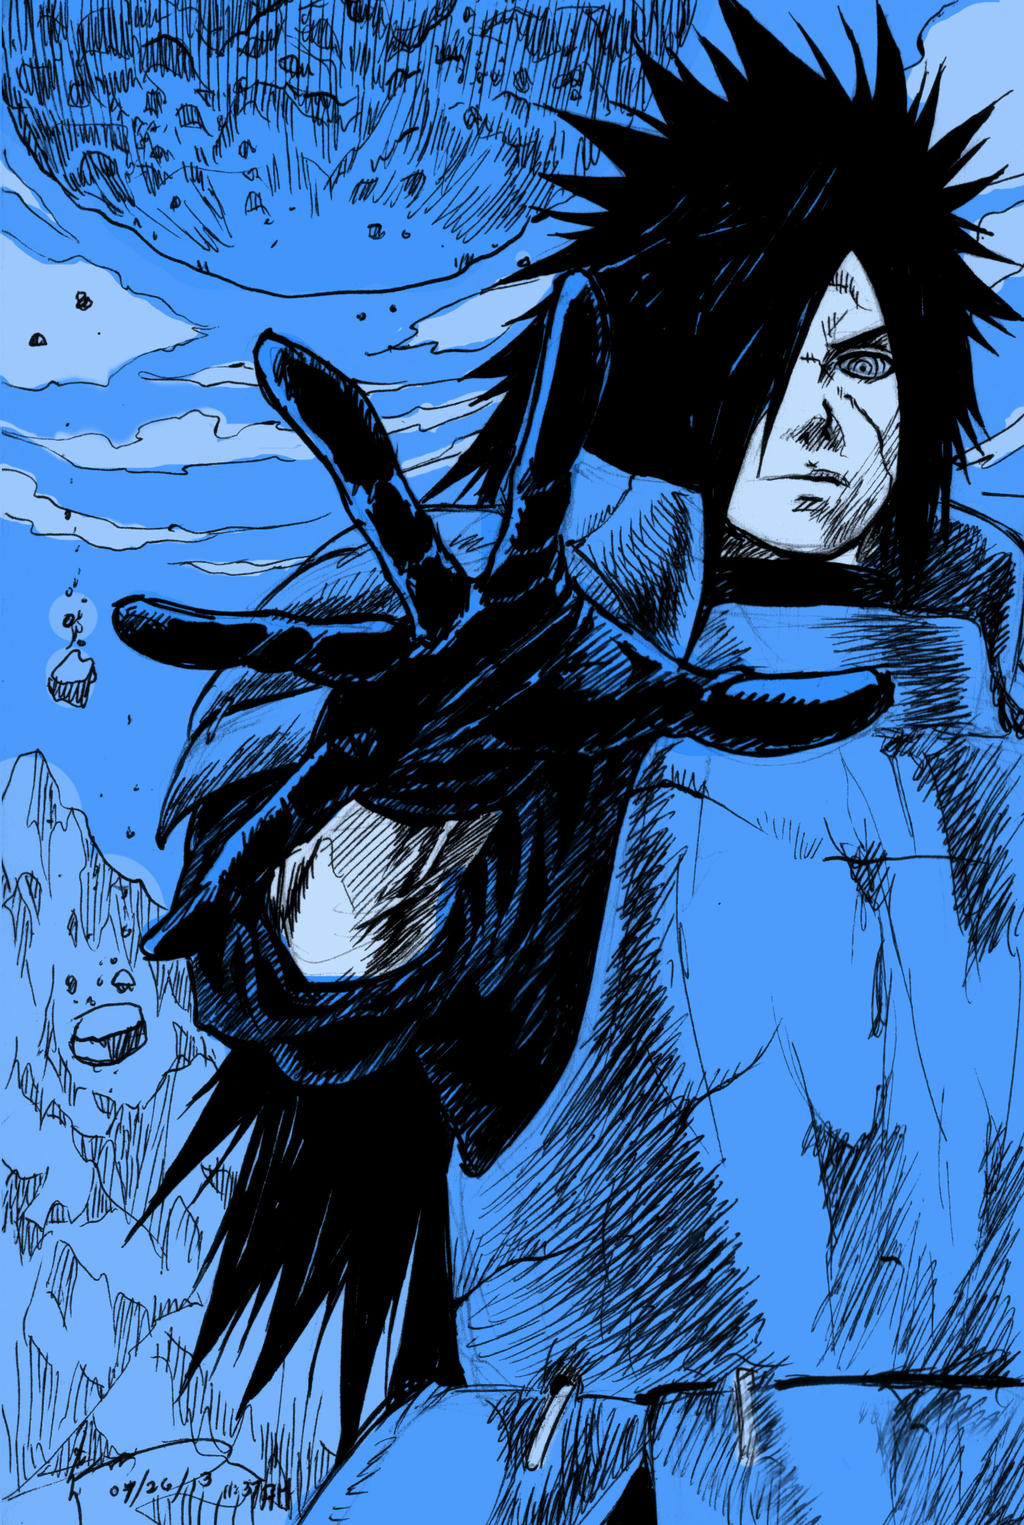 Naruto Shippuden Madara Uchiha by Nick-Ian on DeviantArt